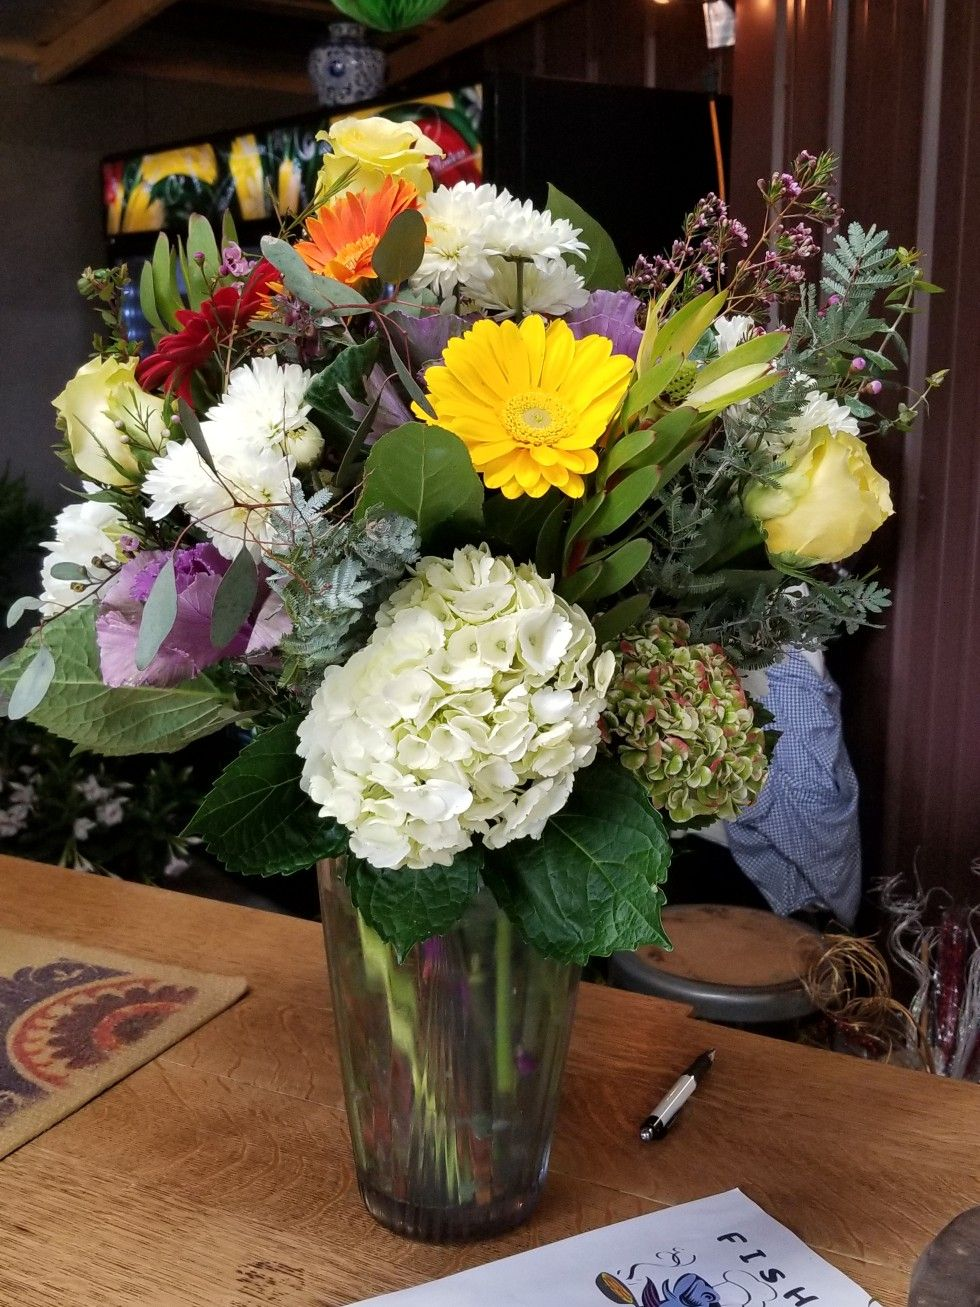 Mixed Flowers In A Vase Spring Flowers In A Vase Flower Vases Flower Arrangements Spring Flowers